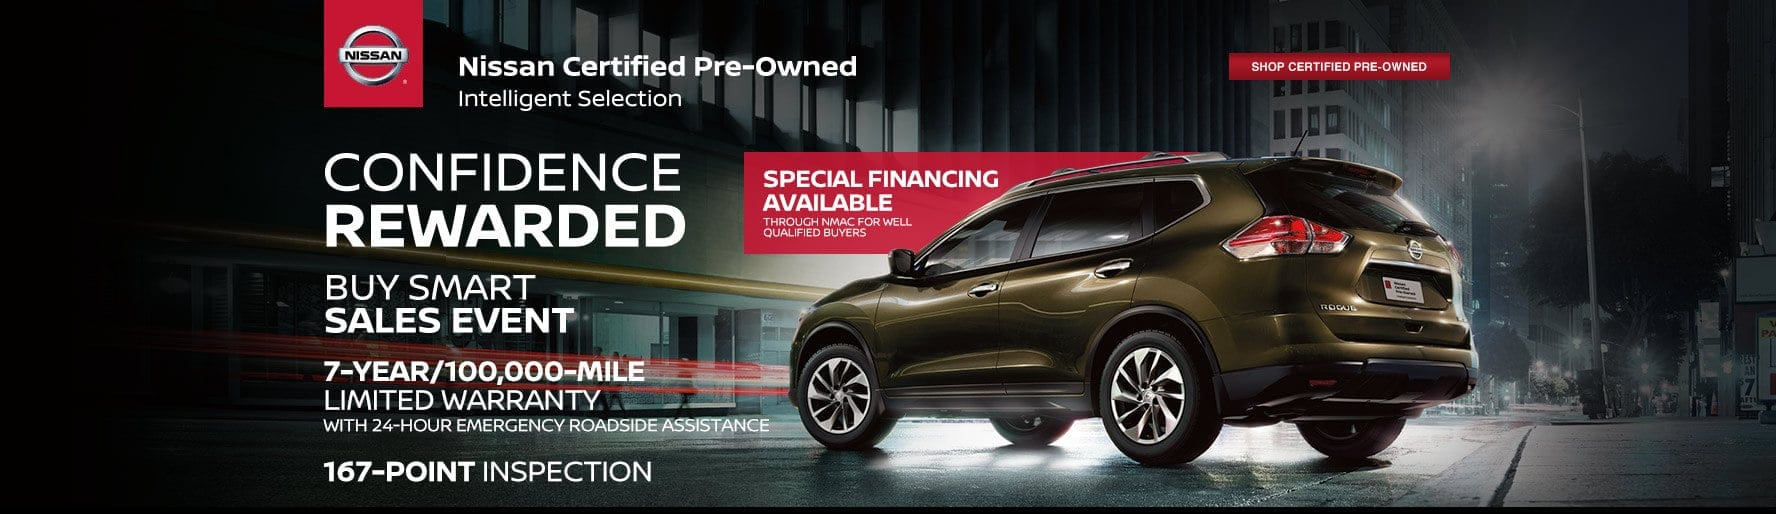 Nissan Certified Pre-Owned - Confidence Rewarded Buy Smart Sales Event - Shop certified pre-owned